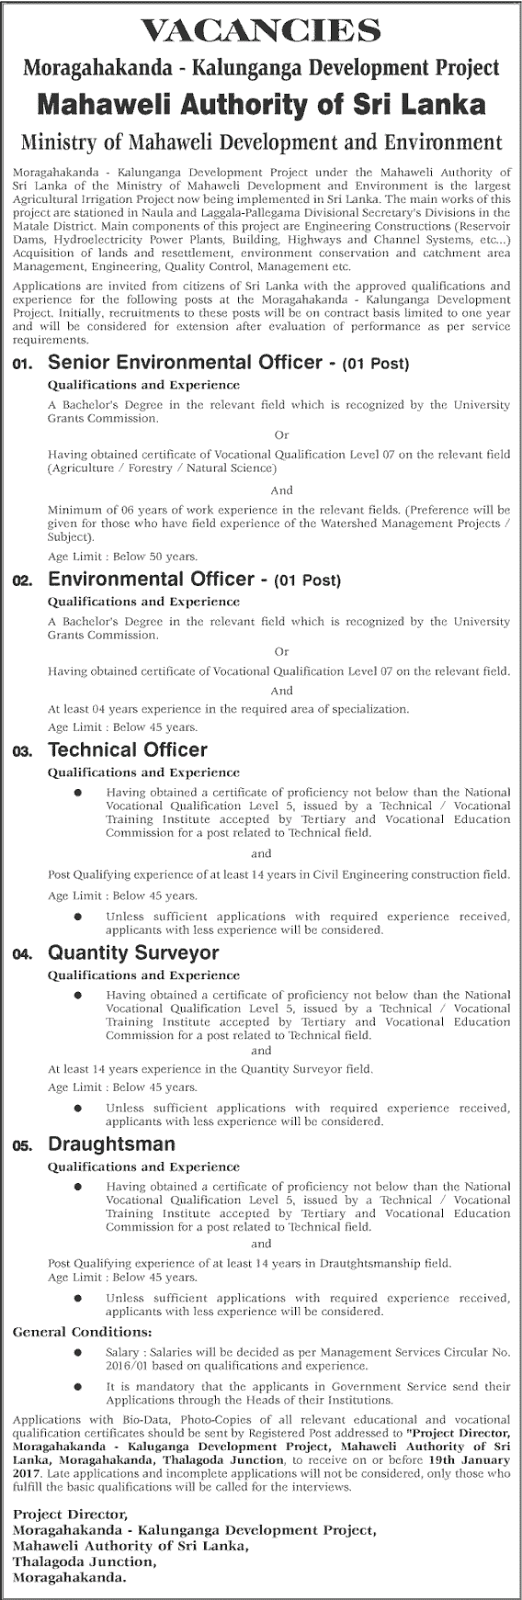 Vacancies at Ministry of Mahaweli Development and Environment